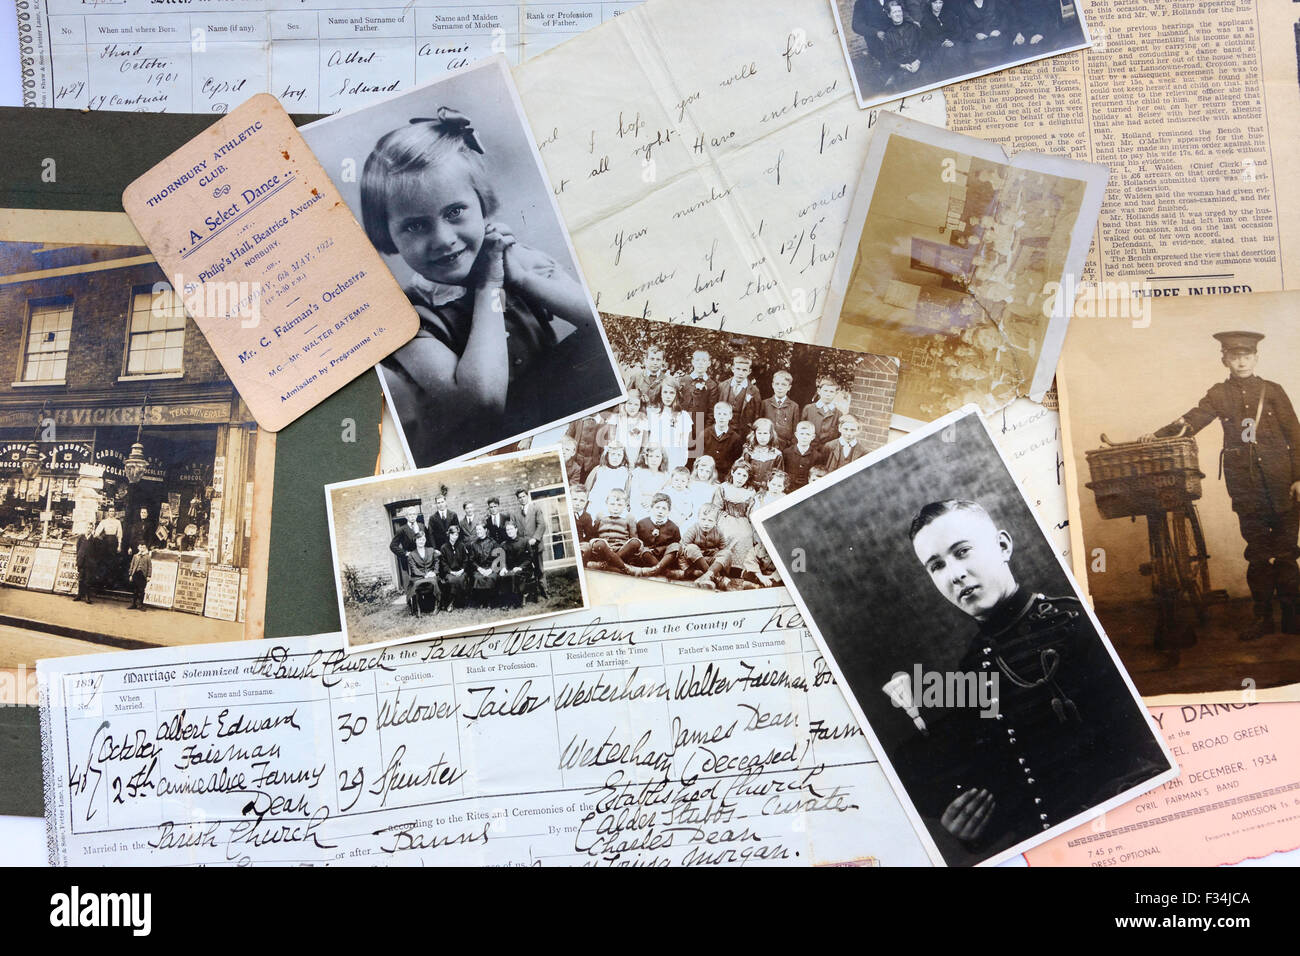 Family tree documents, old photographs, certificates, letters arranged in scattered form - Stock Image